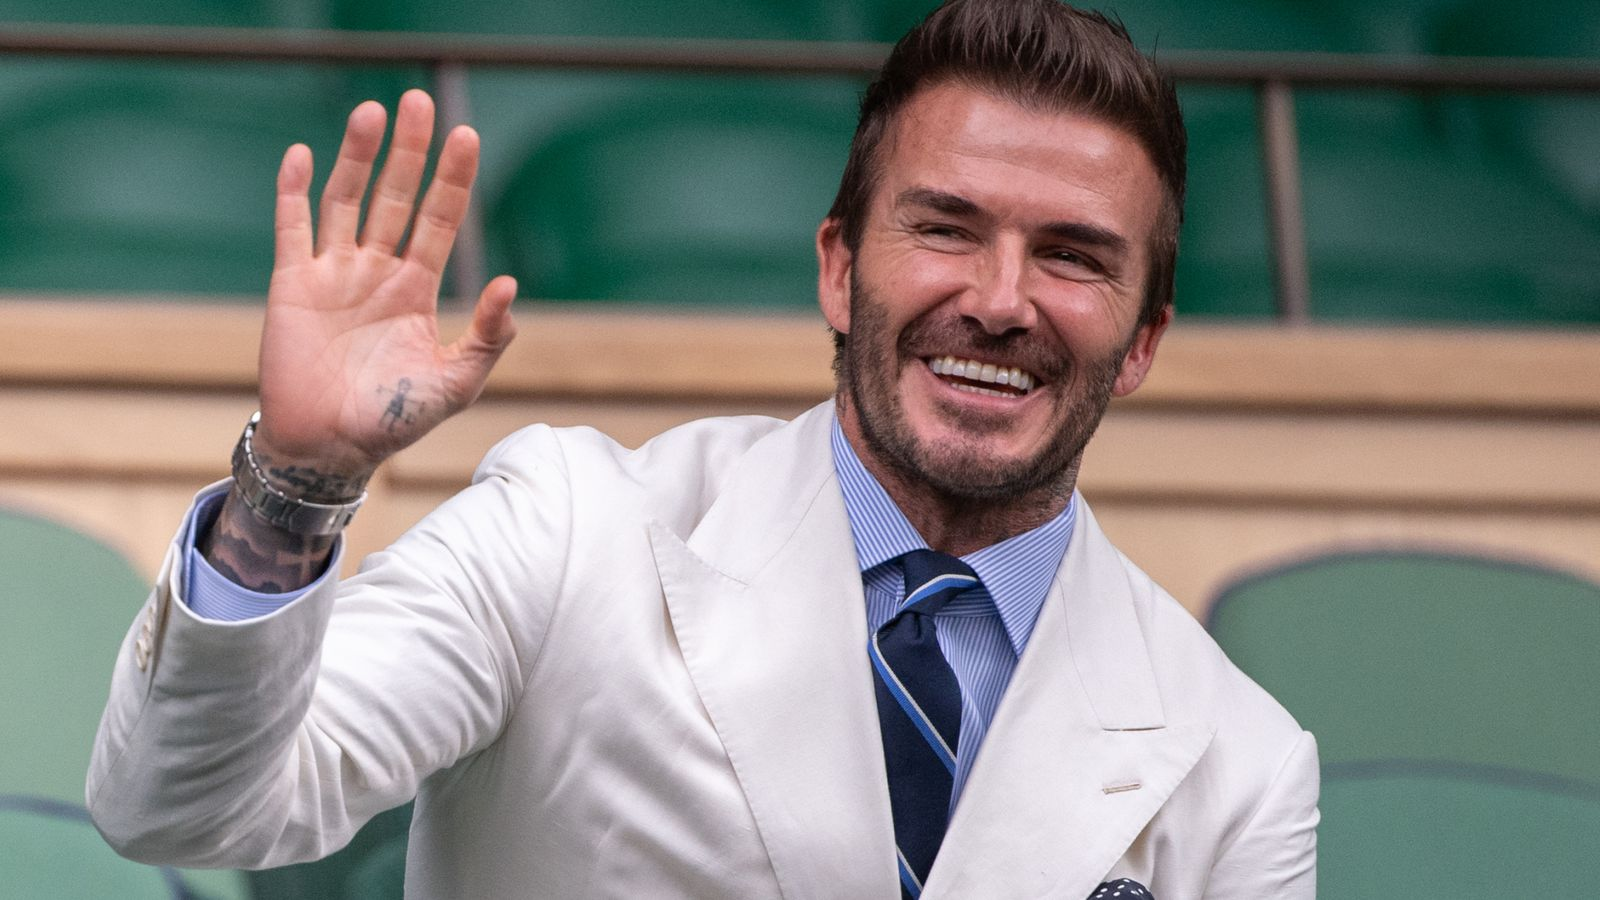 Beckham in talks to buy out consumer venture Seven Global